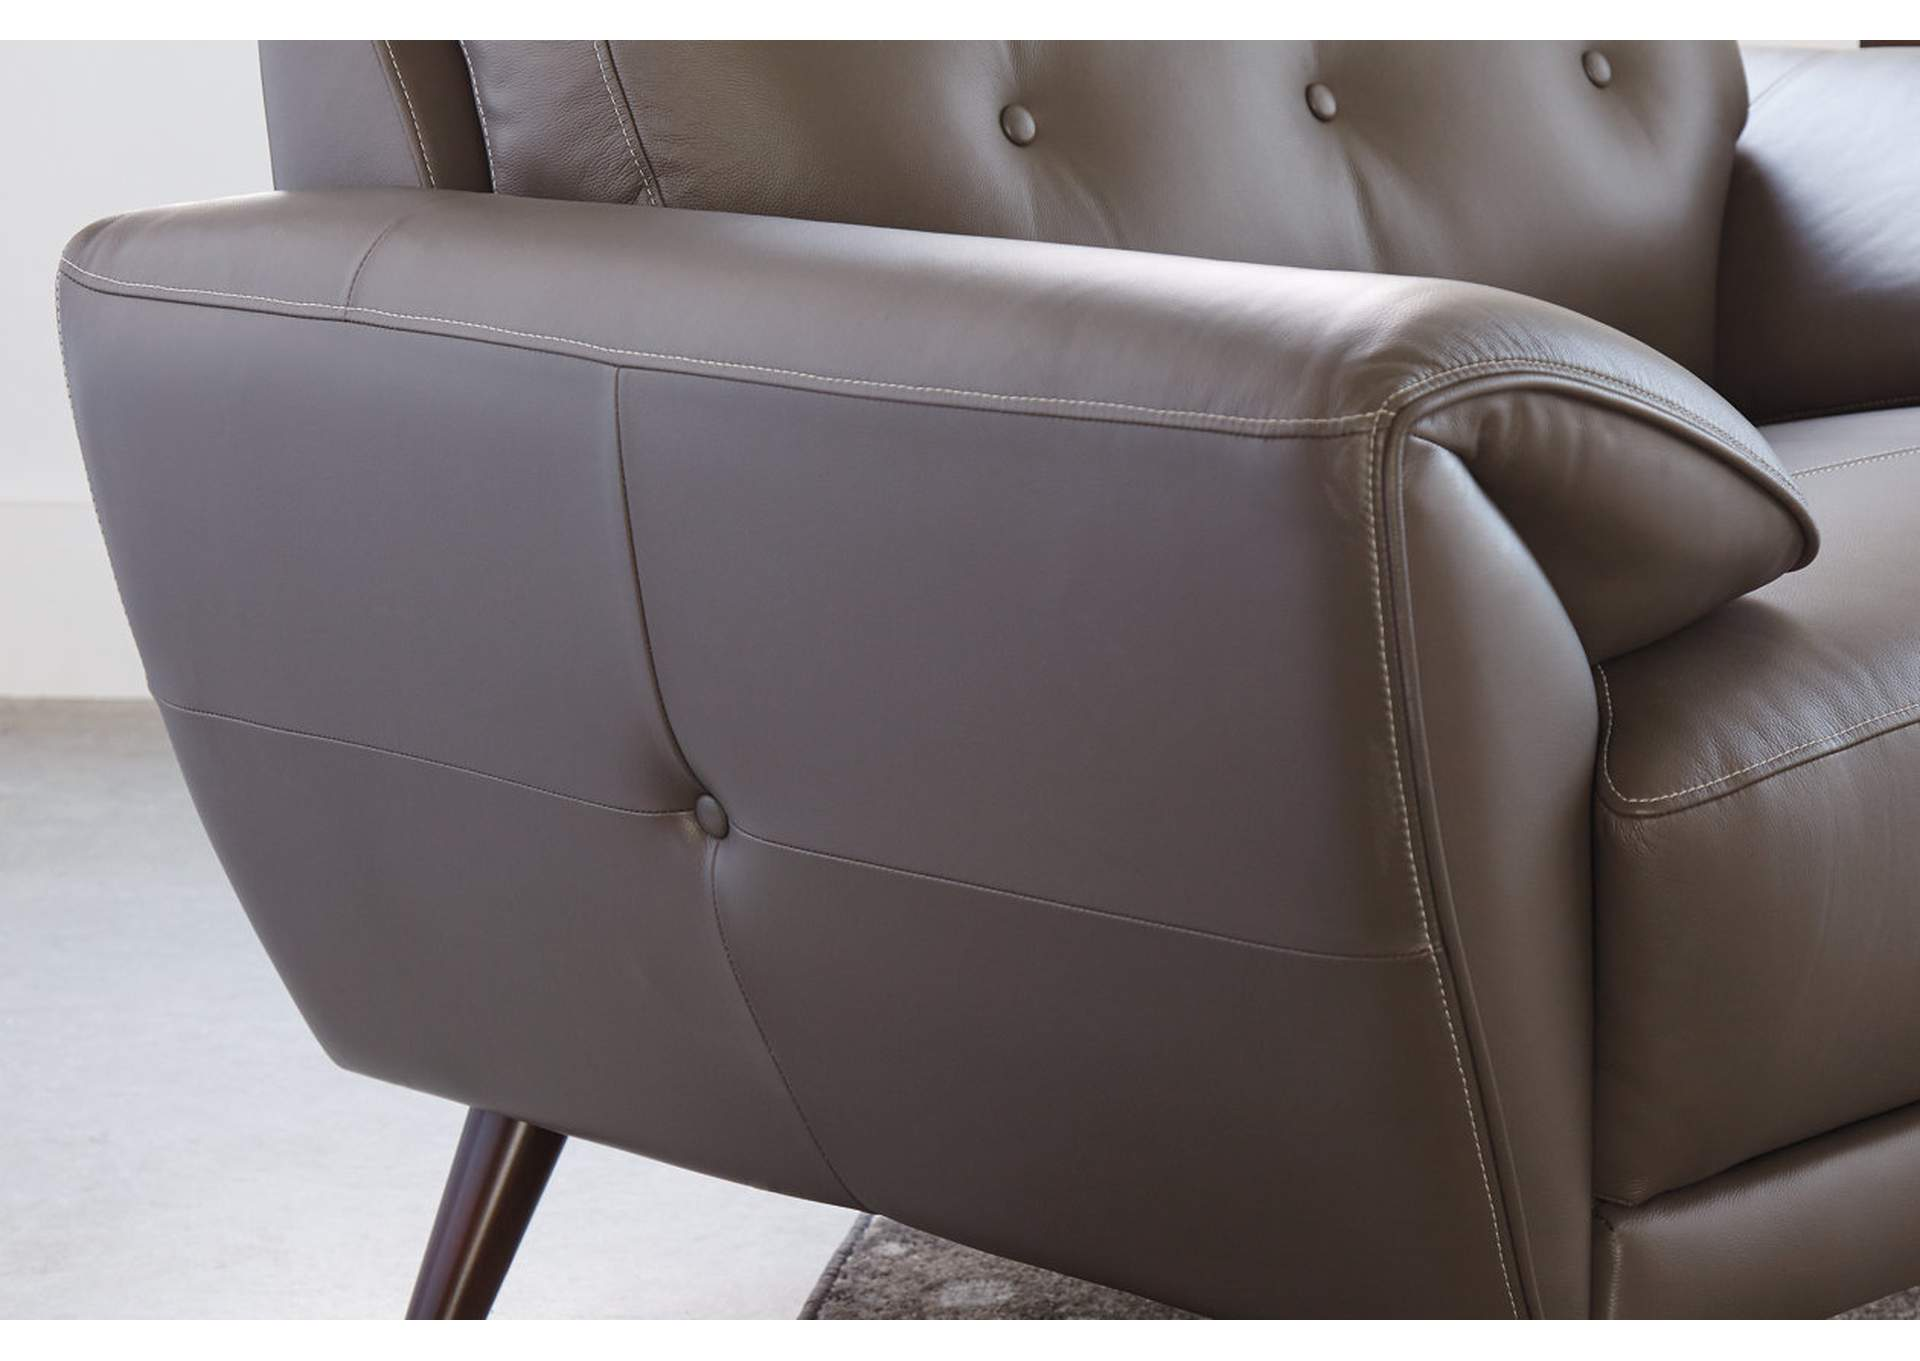 Sissoko Gray Leather Sofa,Signature Design By Ashley